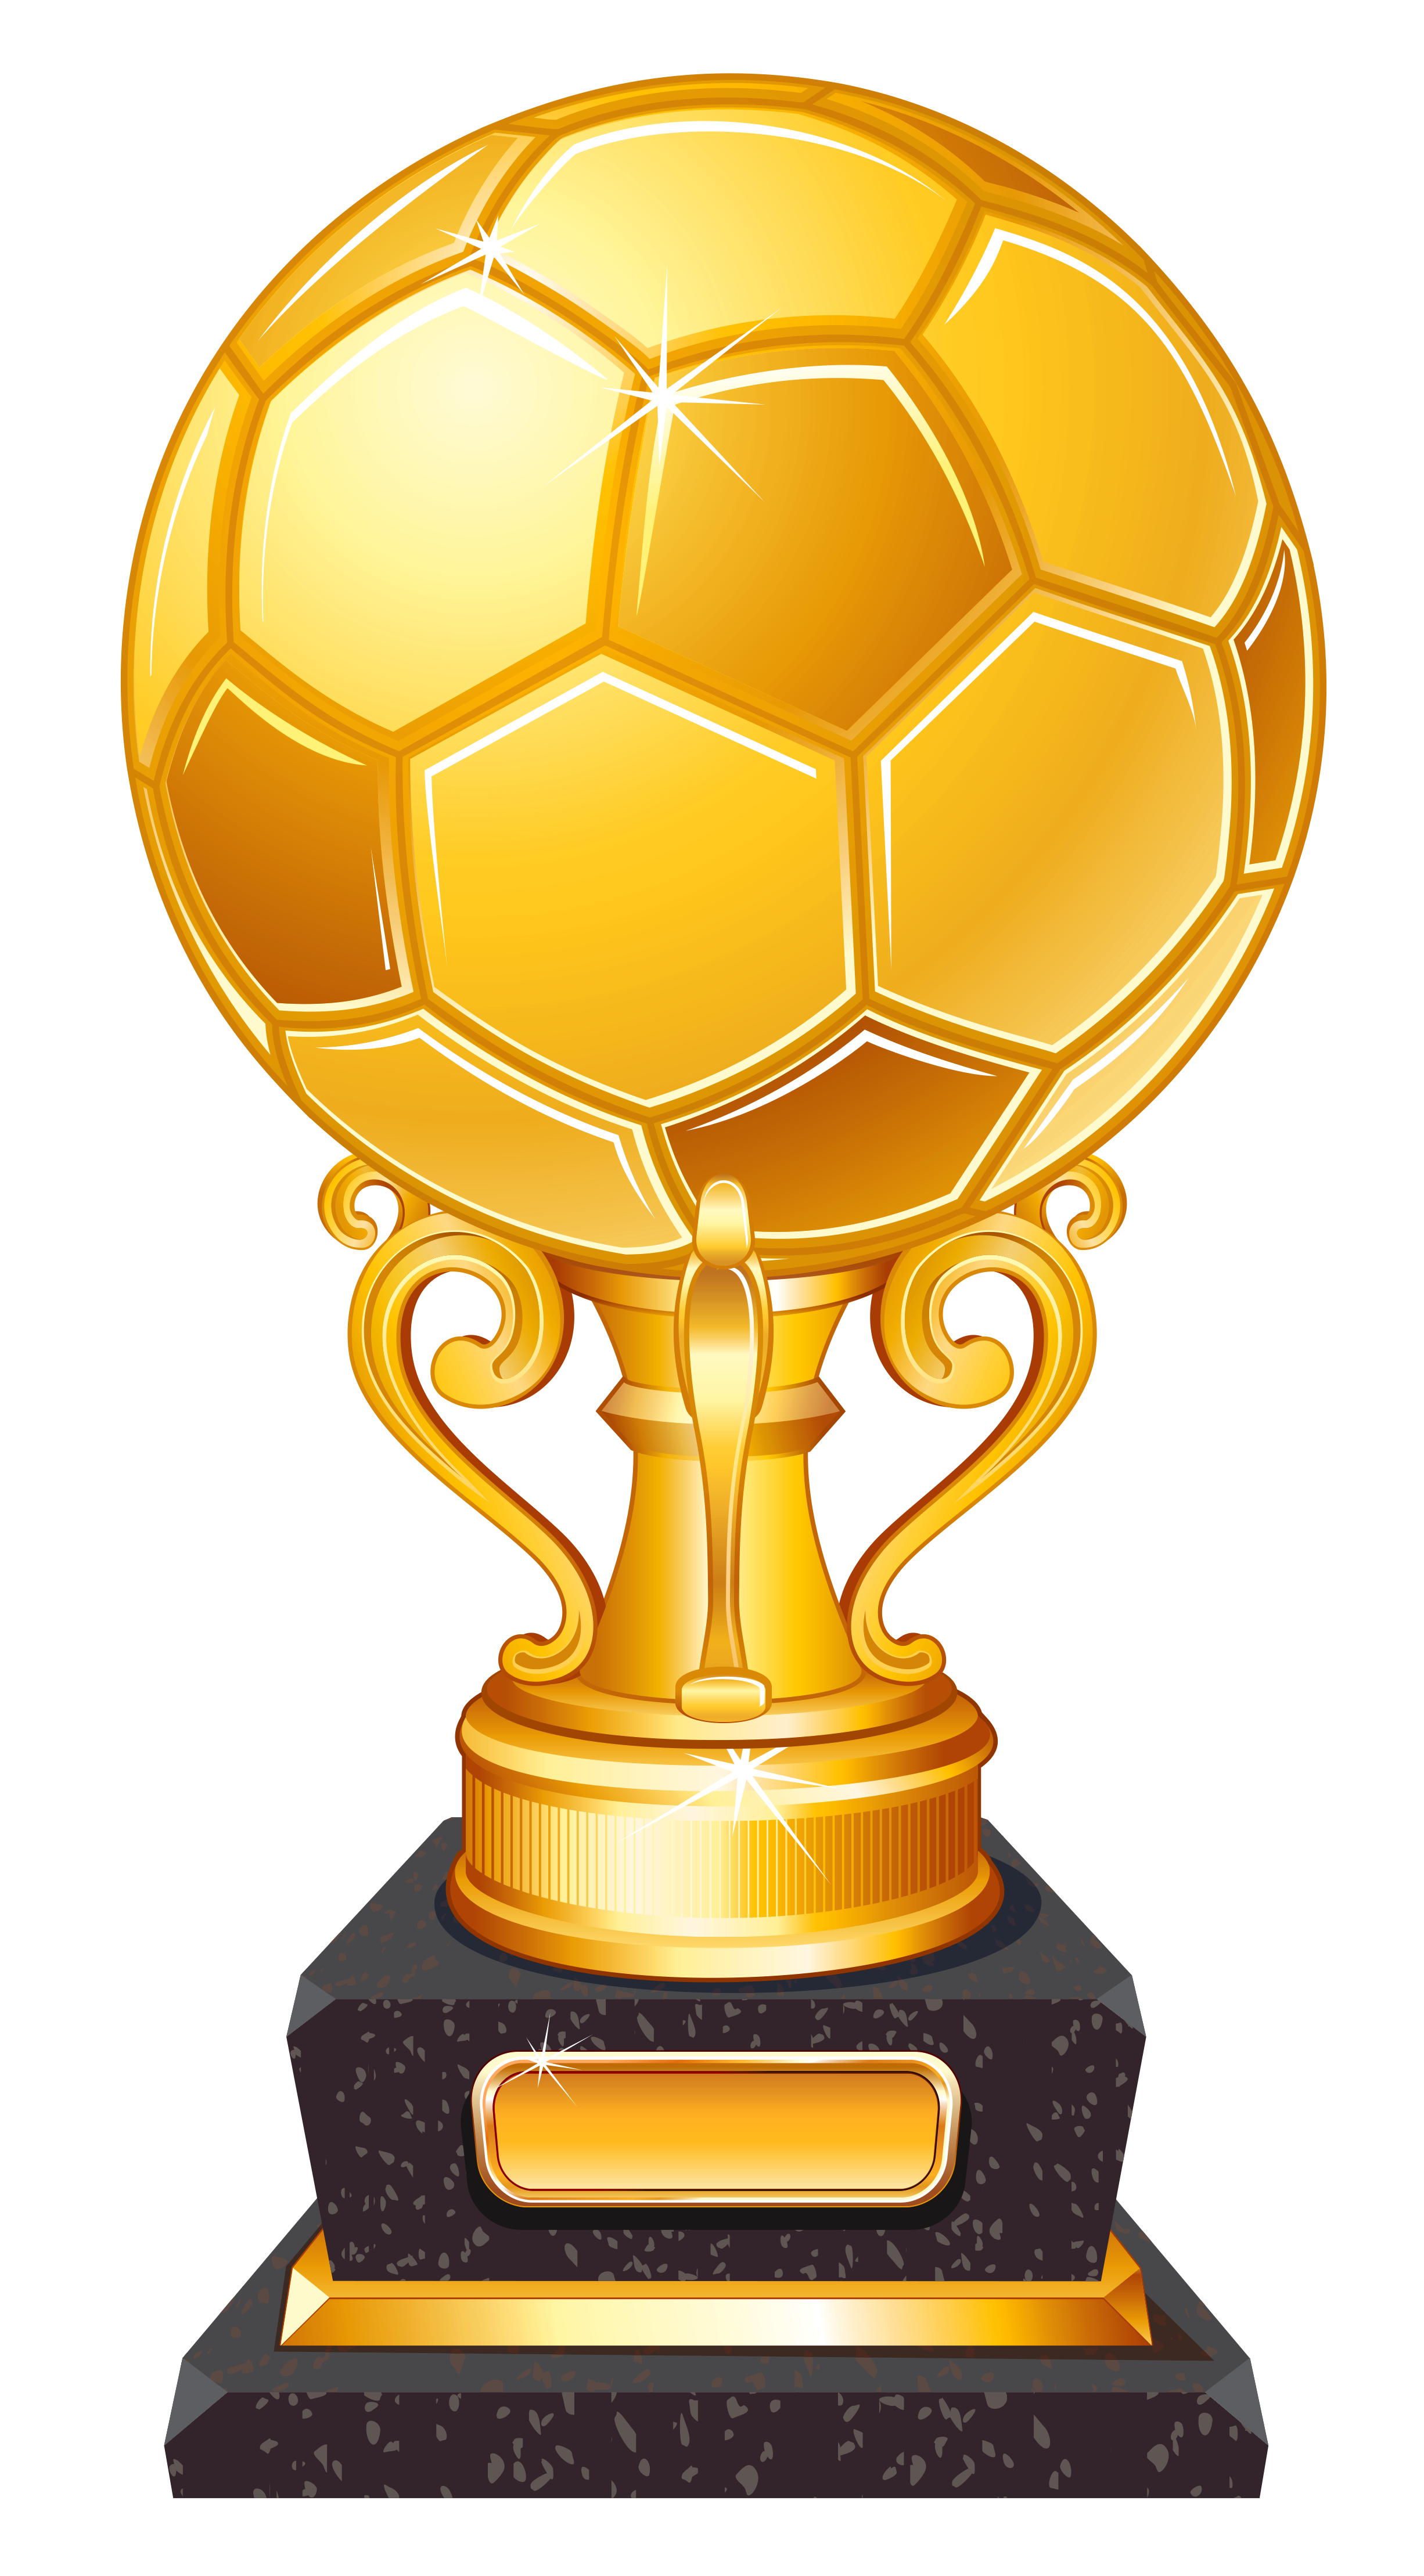 Gold football clipart image freeuse library Gold Football Award Trophy Transparent PNG Clipart | Gallery ... image freeuse library